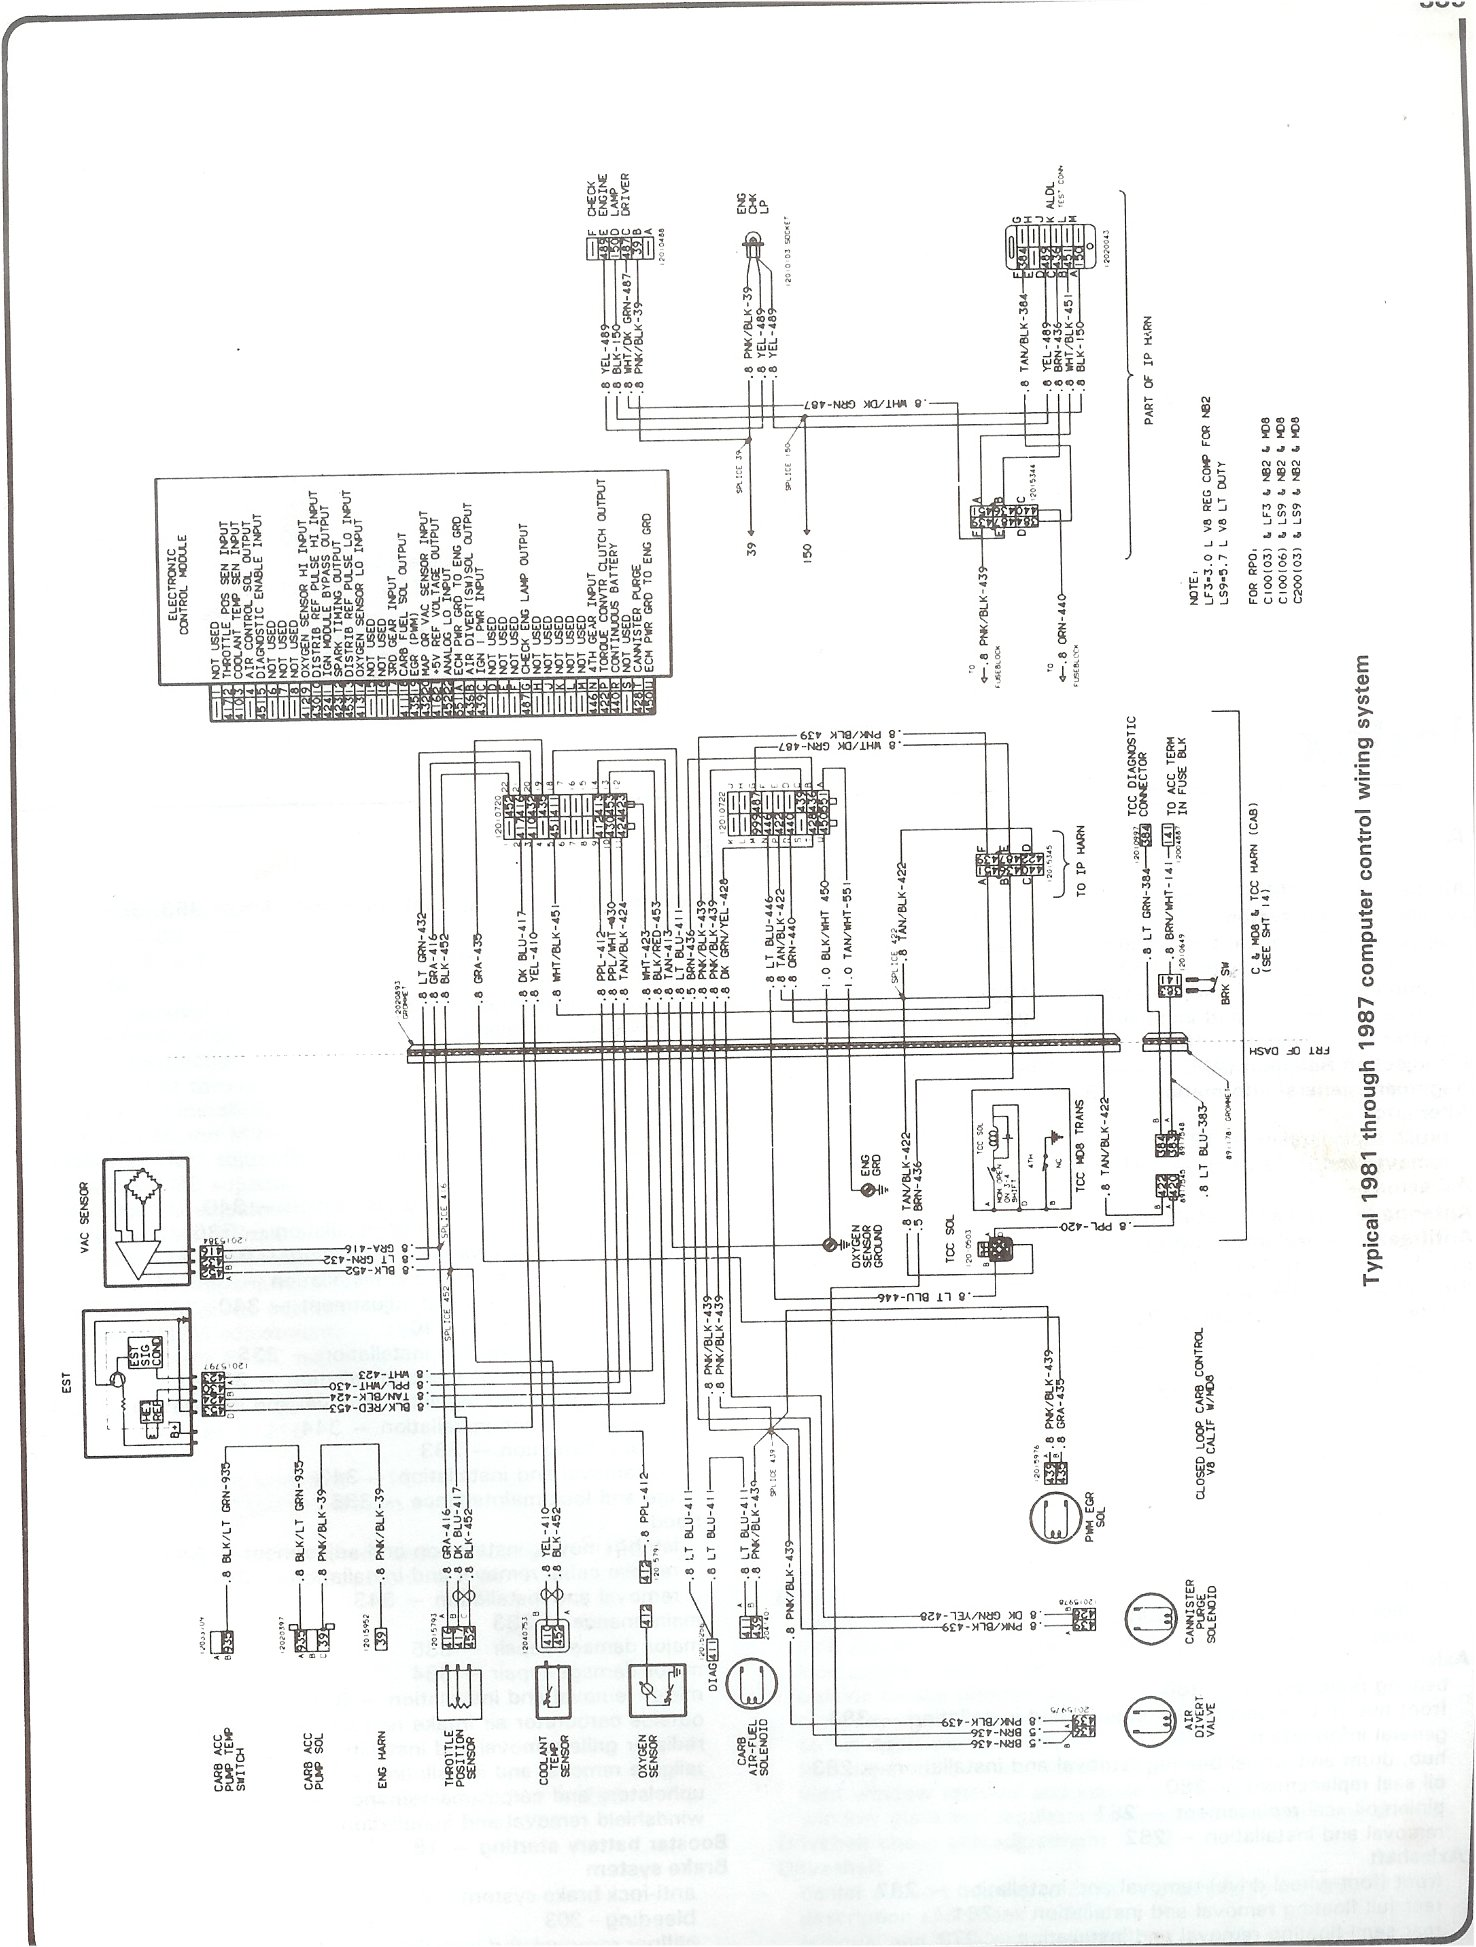 81 87_computer_control_wiring 1983 chevy truck wiring diagram 1981 chevy truck wiring diagram 1998 chevy suburban ignition wiring diagram at n-0.co